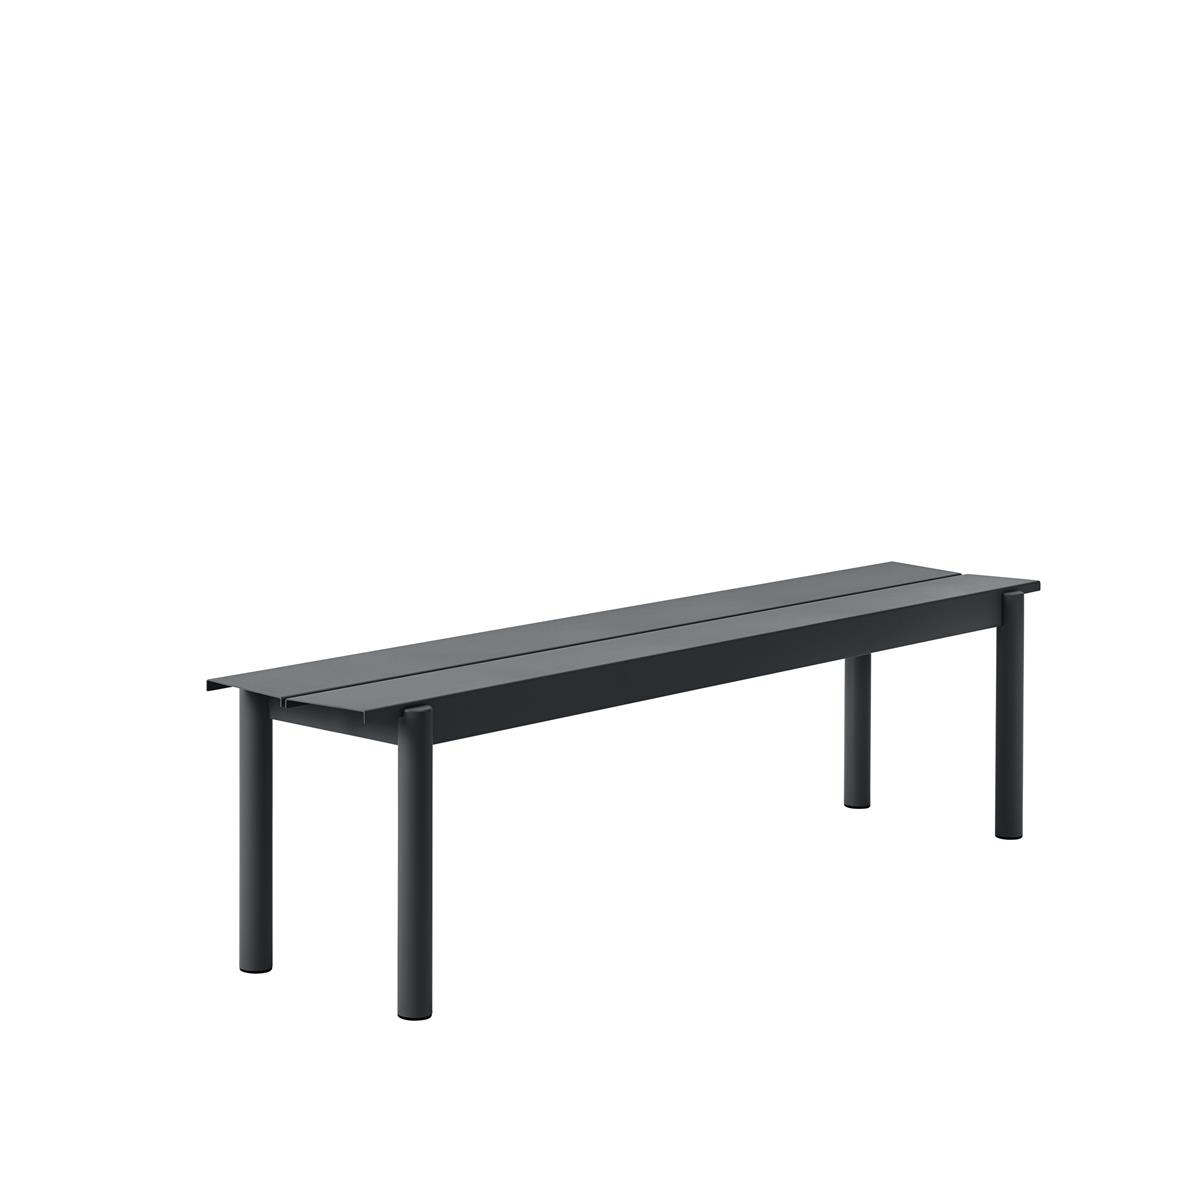 Linear Steel Bench 170 x H45,5 - Black